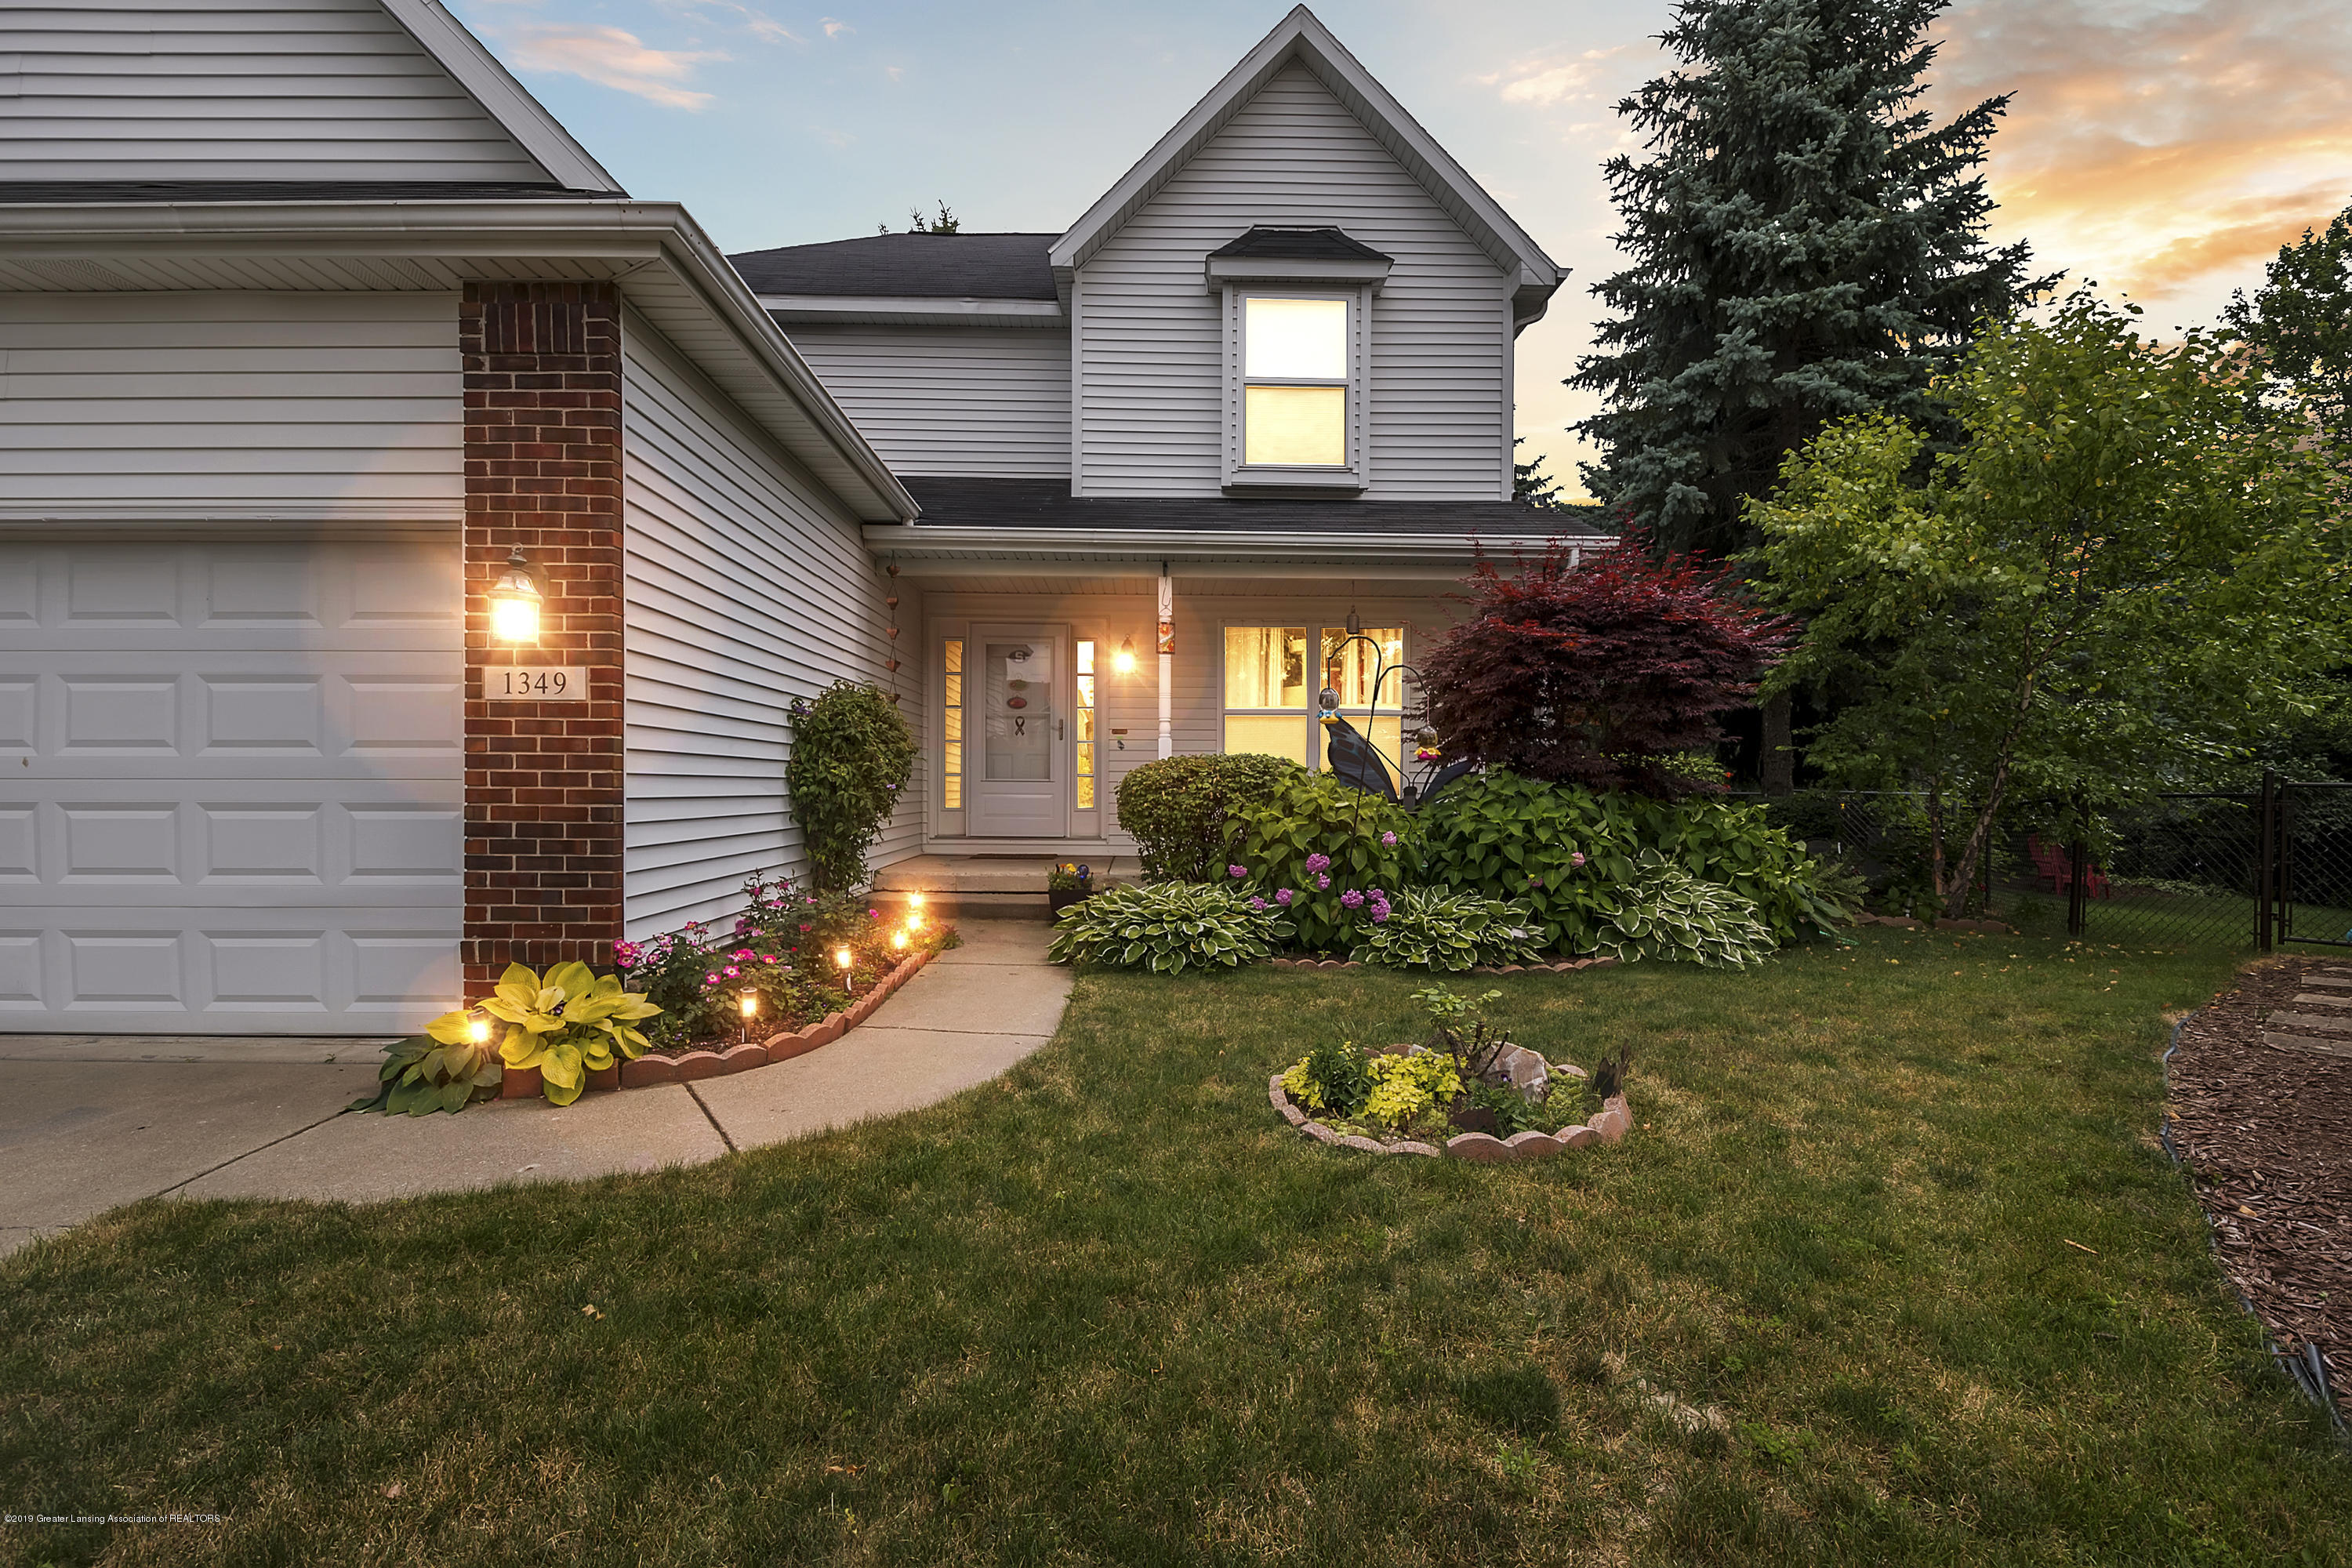 1349 Turtlecreek Cir - 1349-Turtlecreek-Cir-East-Lansing-window - 1